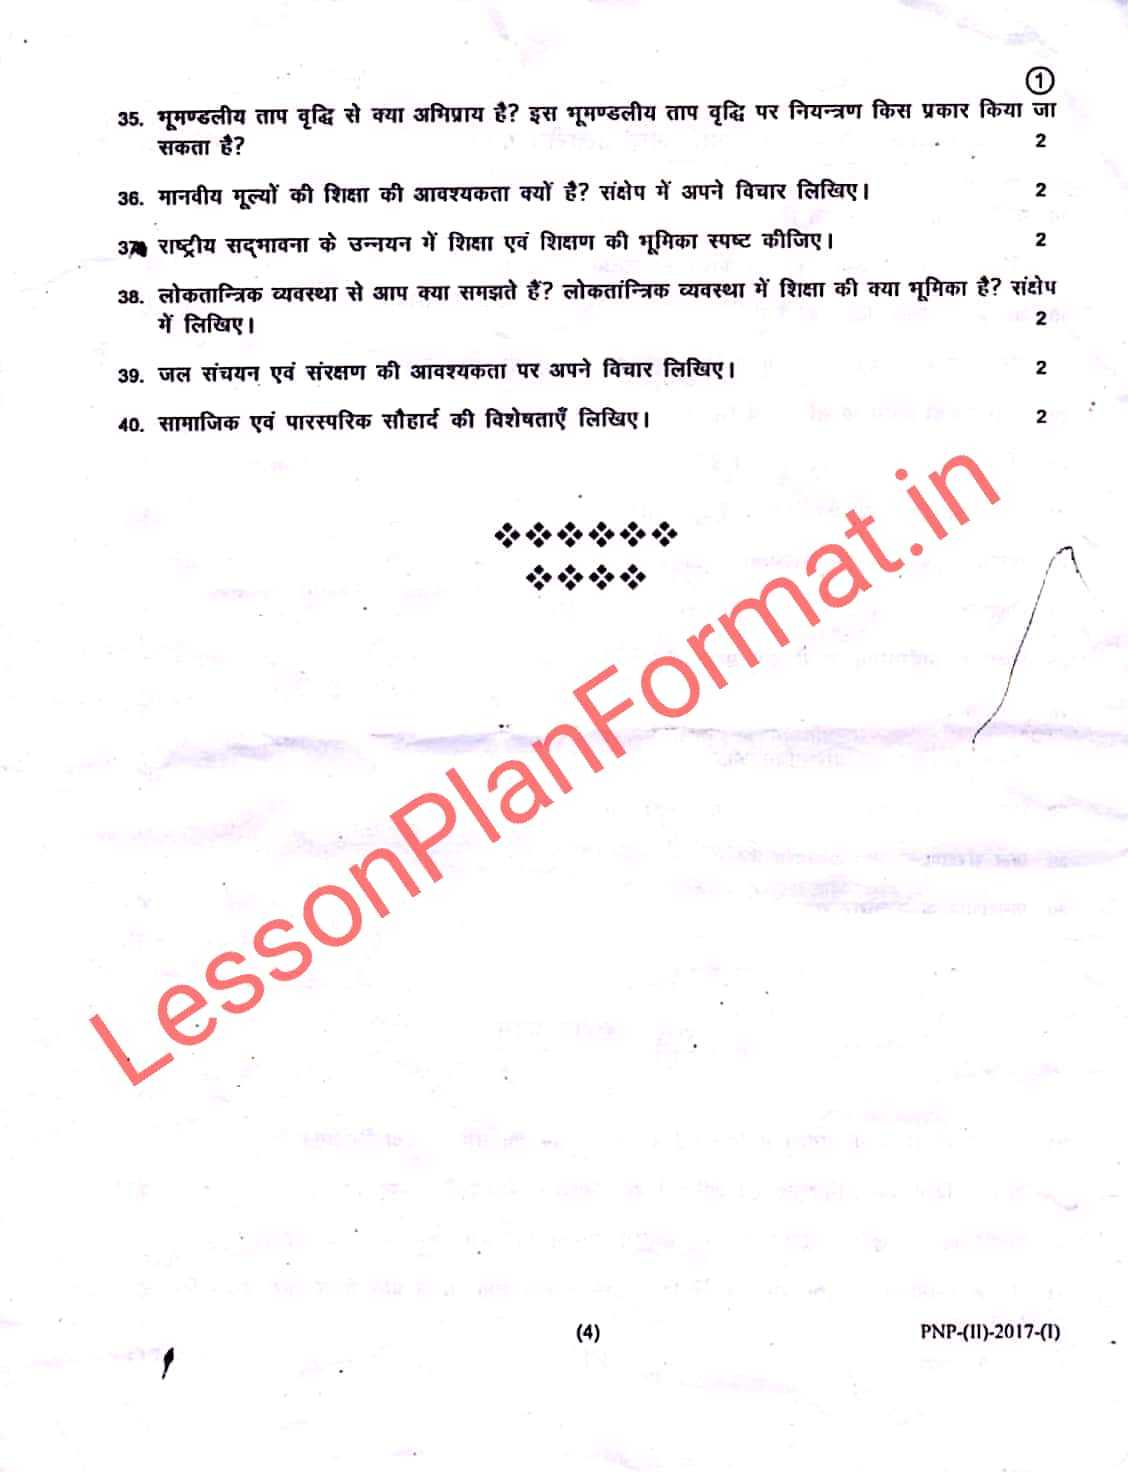 Up Btc 2nd Semester Previous Year Exam Paper 2019